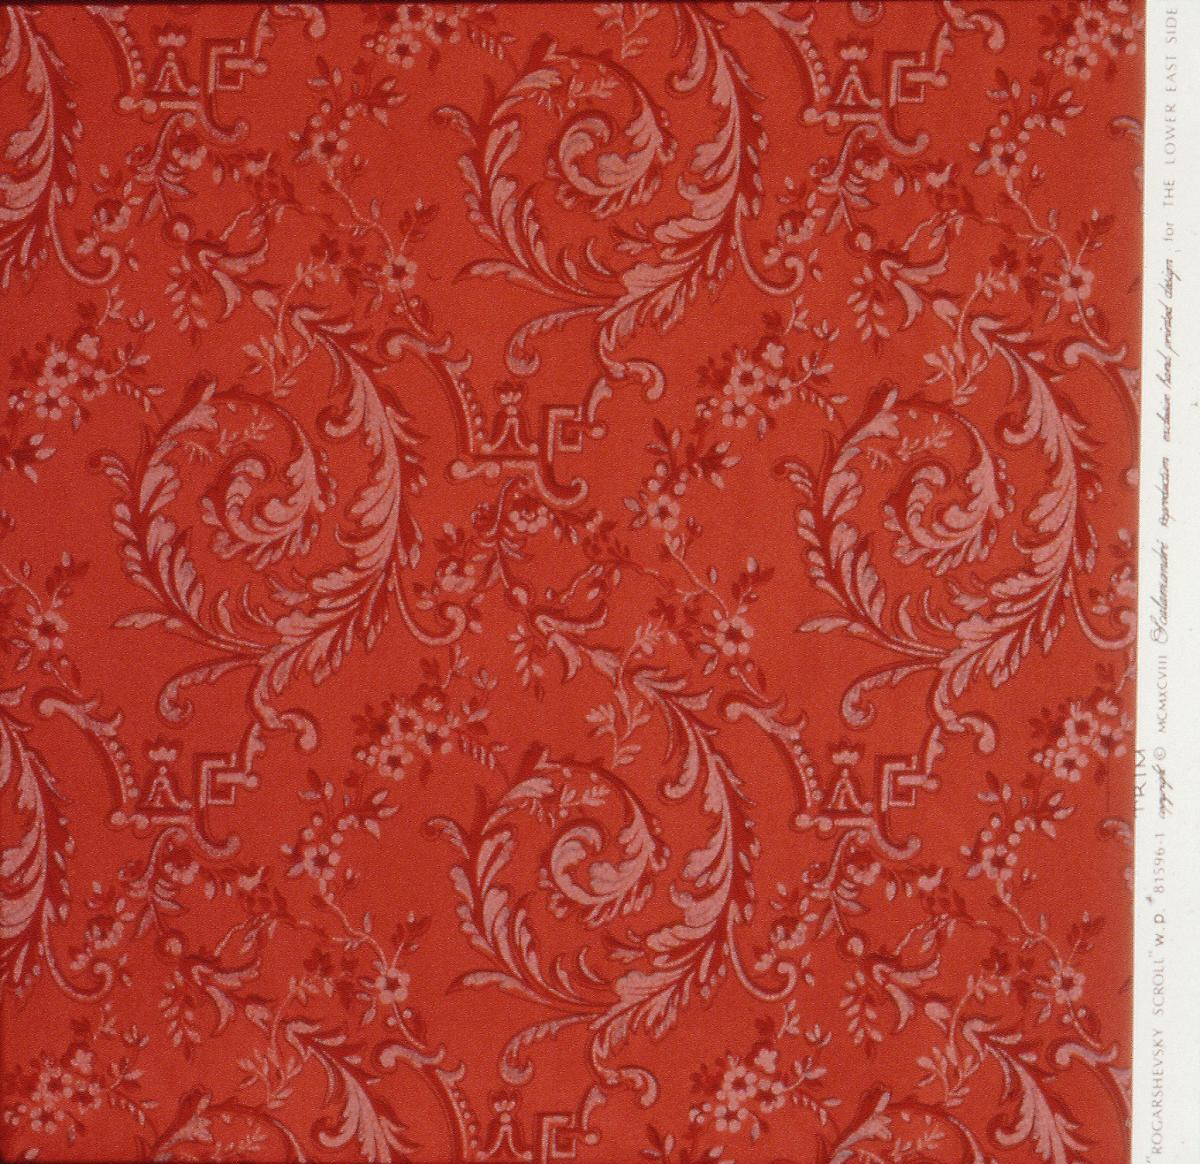 photograph of orange antique wallpaper